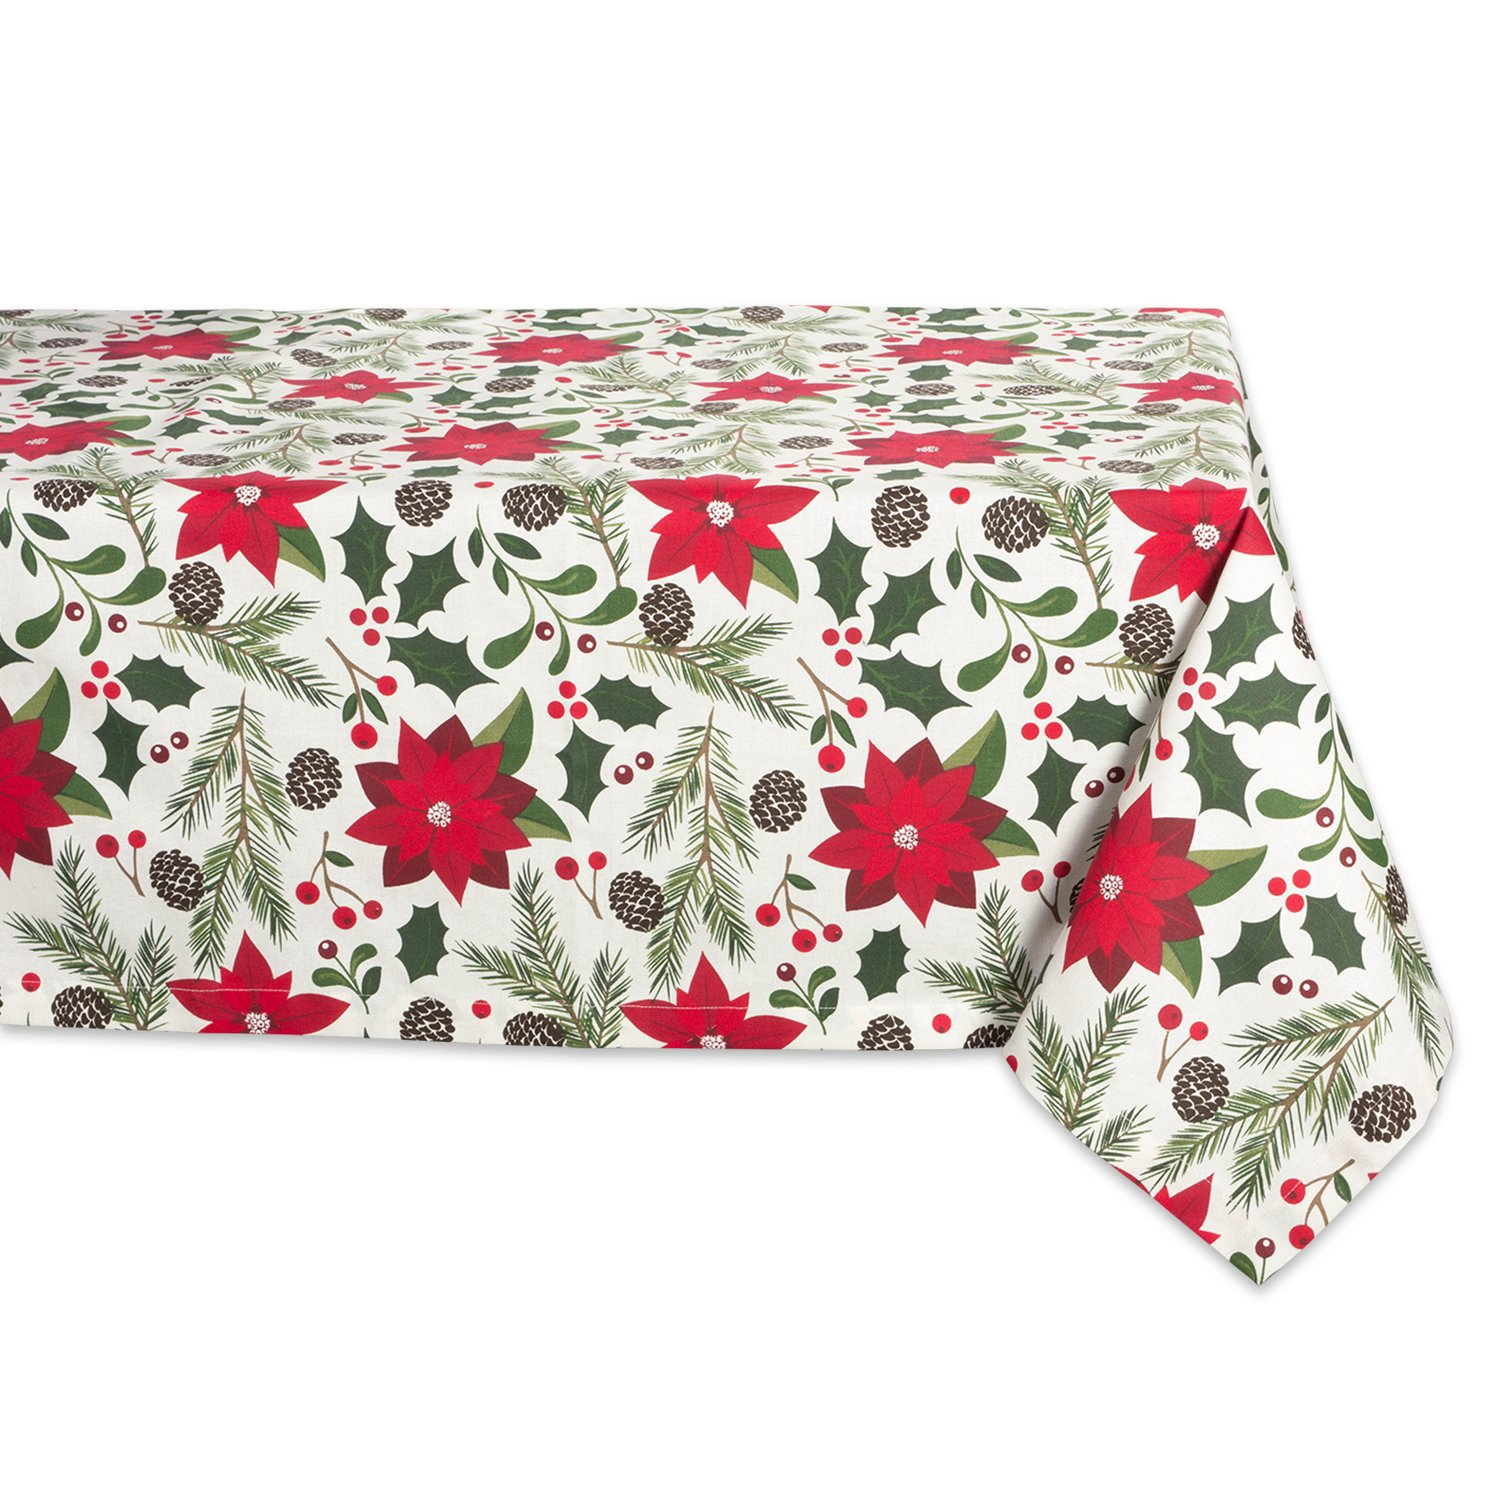 DII 100% Cotton, Machine Washable, Dinner and Holiday Tablecloth - 60x104'' Seats 8 to 10 People, Woodland Christmas